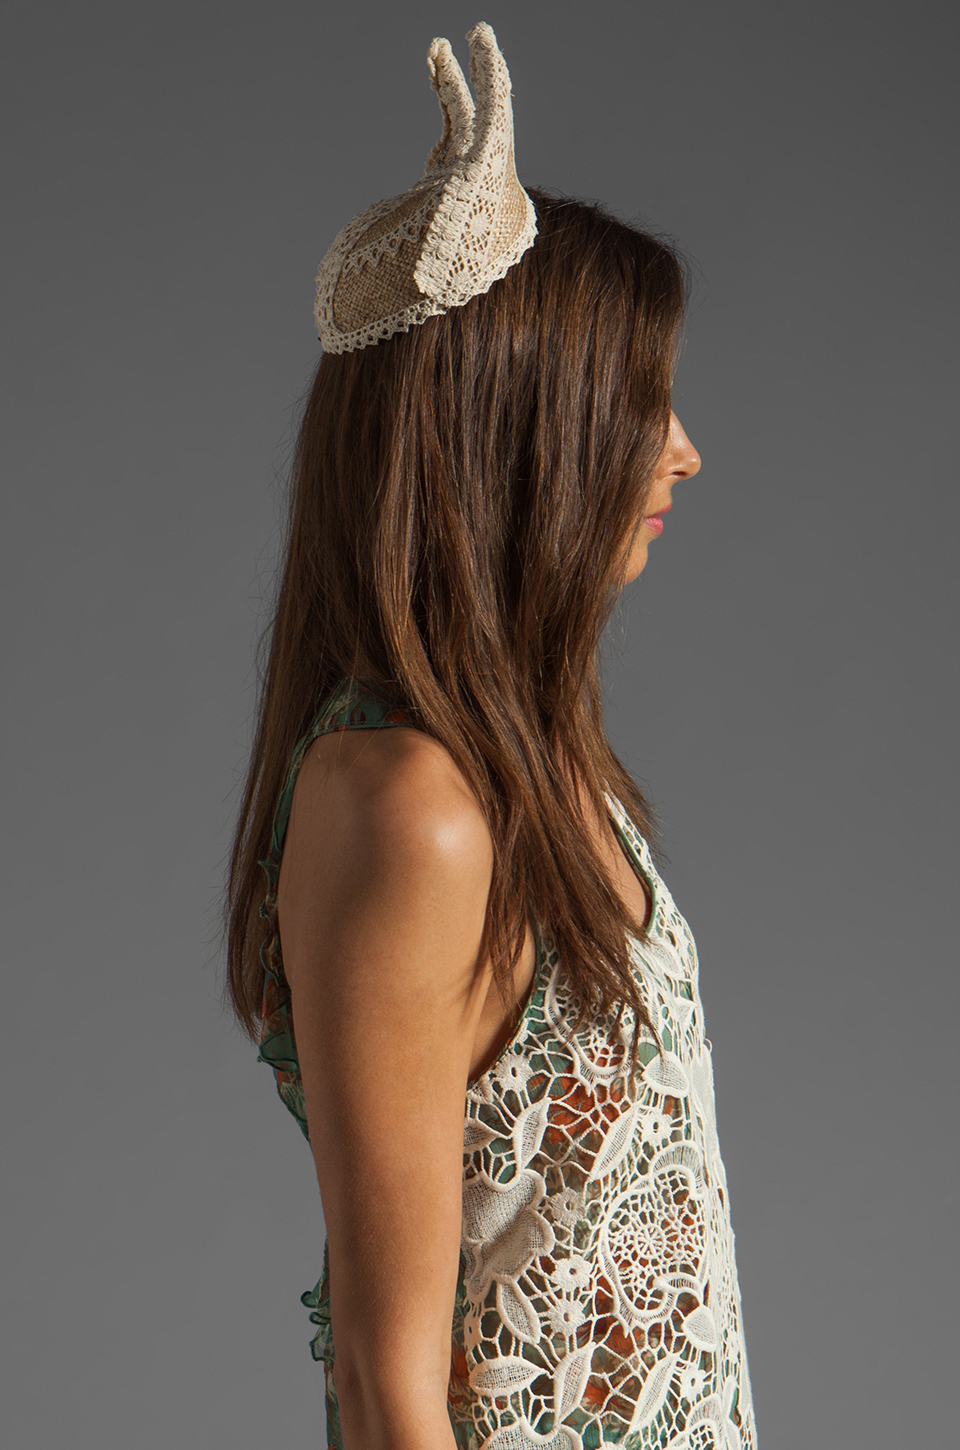 Anna Sui Kitten Hat in Natural